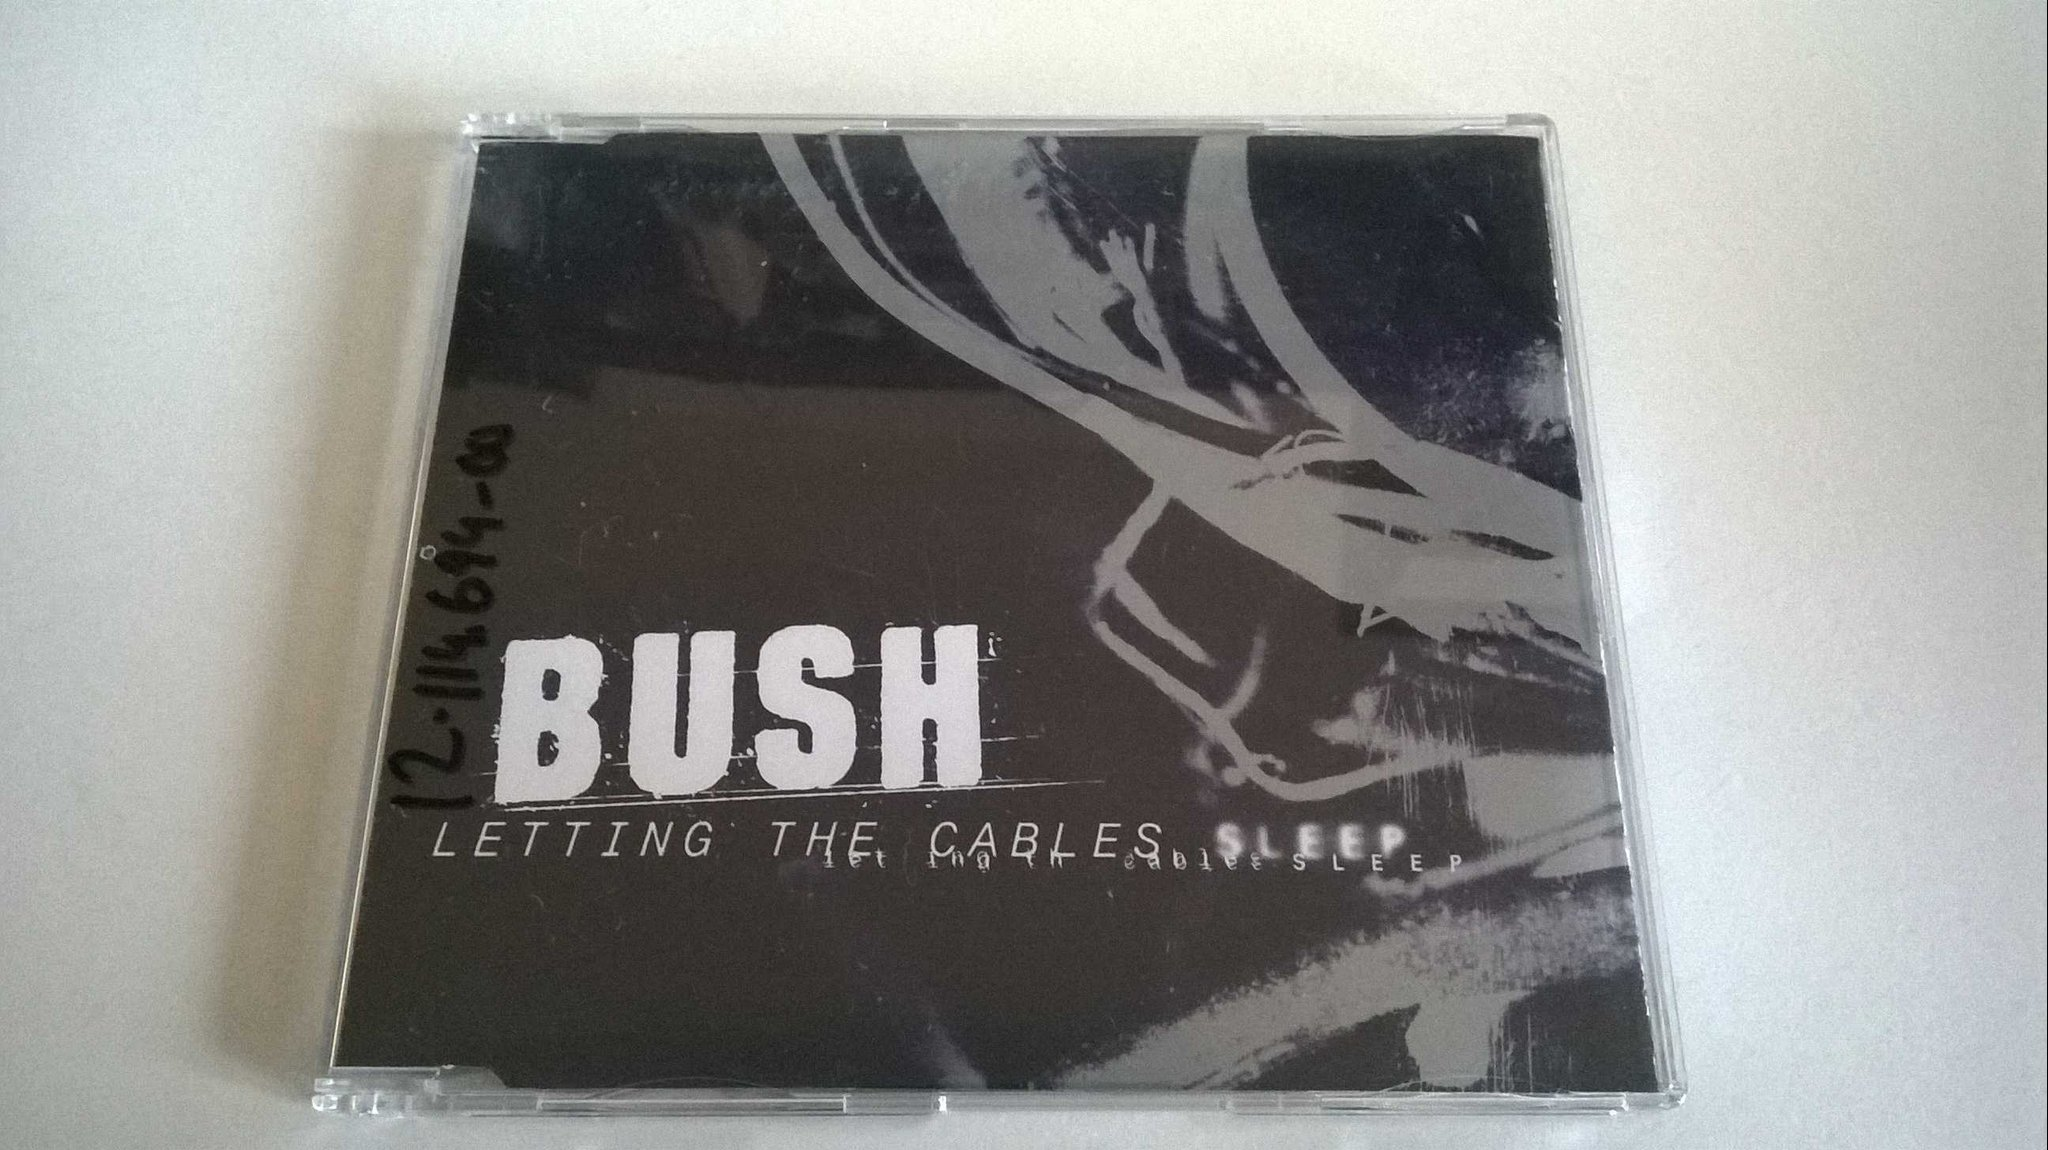 Bush - Letting The Cables Sleep, CD